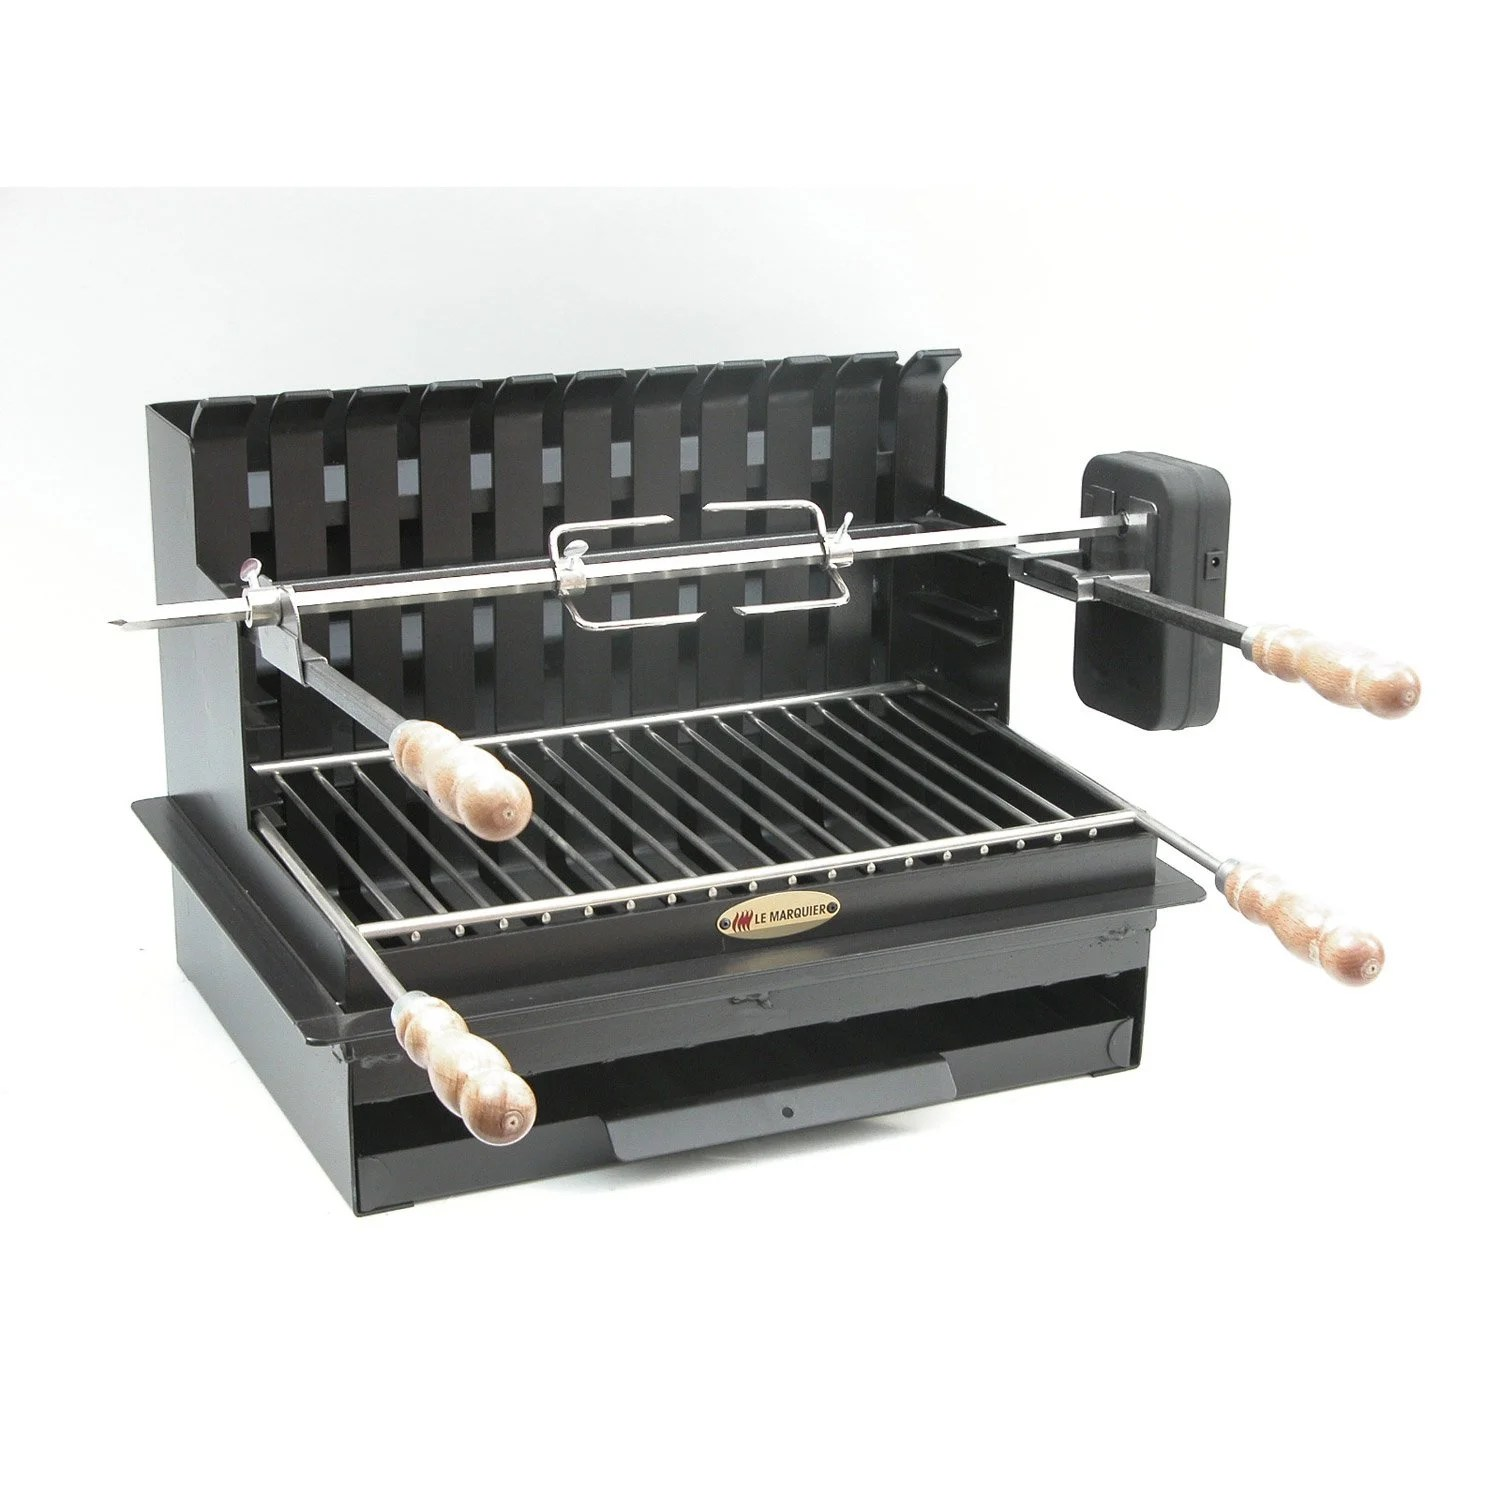 Leroy Merlin Larochelle Barbecue A Gas Leroy Merlin Latest Barbecue Gaz Grill Et